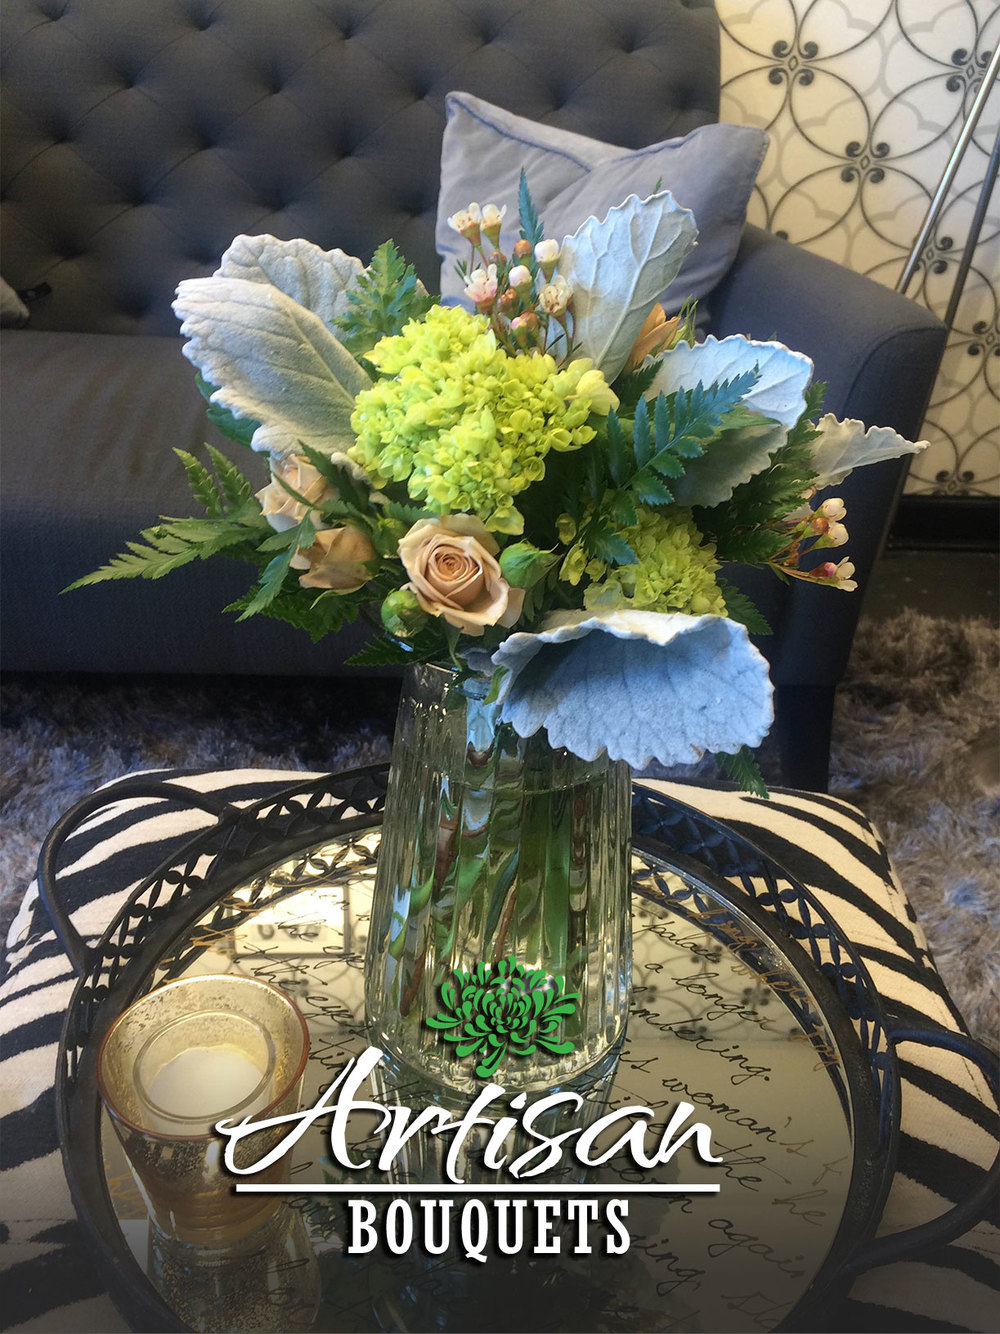 Hand-tied artisan bouquets now available at Geny's Flowers. Selection will vary depending on flower inventory. All bouquets are $25.00 w/ vase or $20.00 without. Quantities limited.